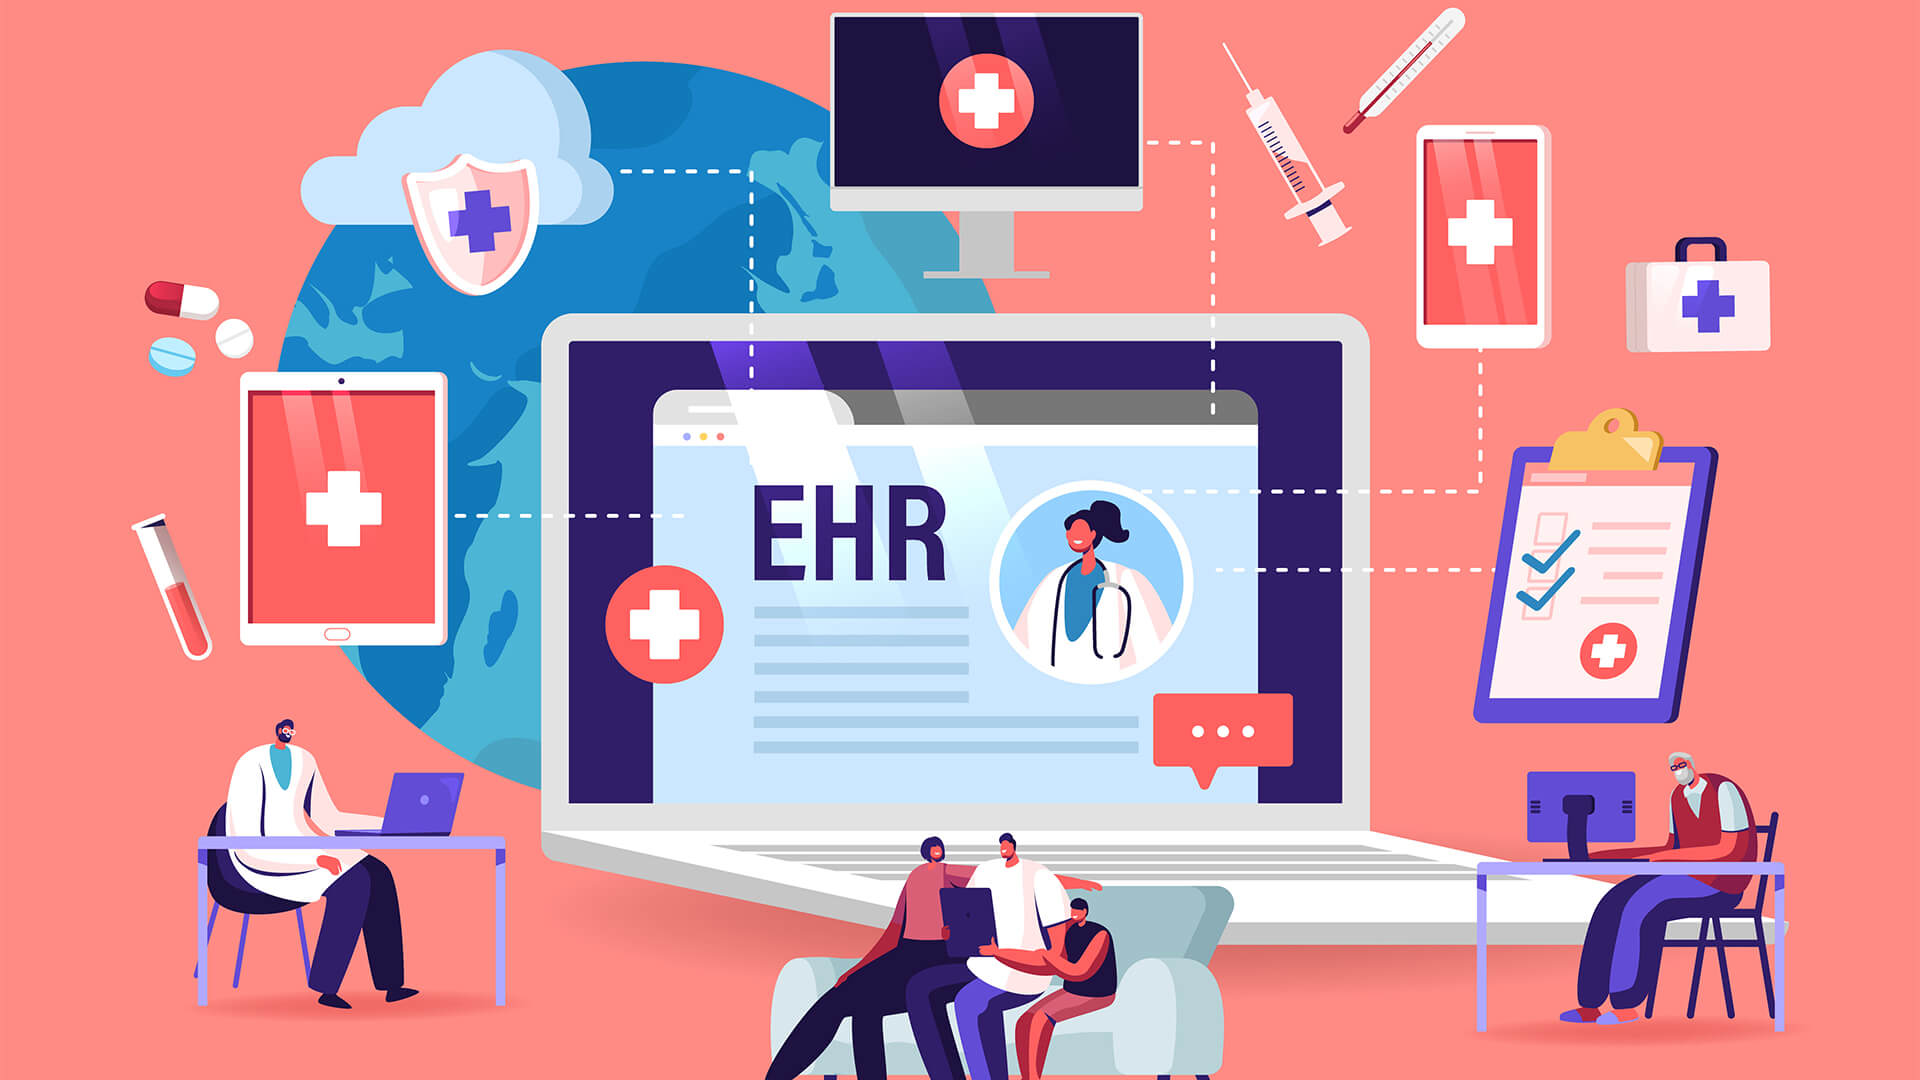 Why Is Electronic Health Record a Good Idea for Health Care Organisations?